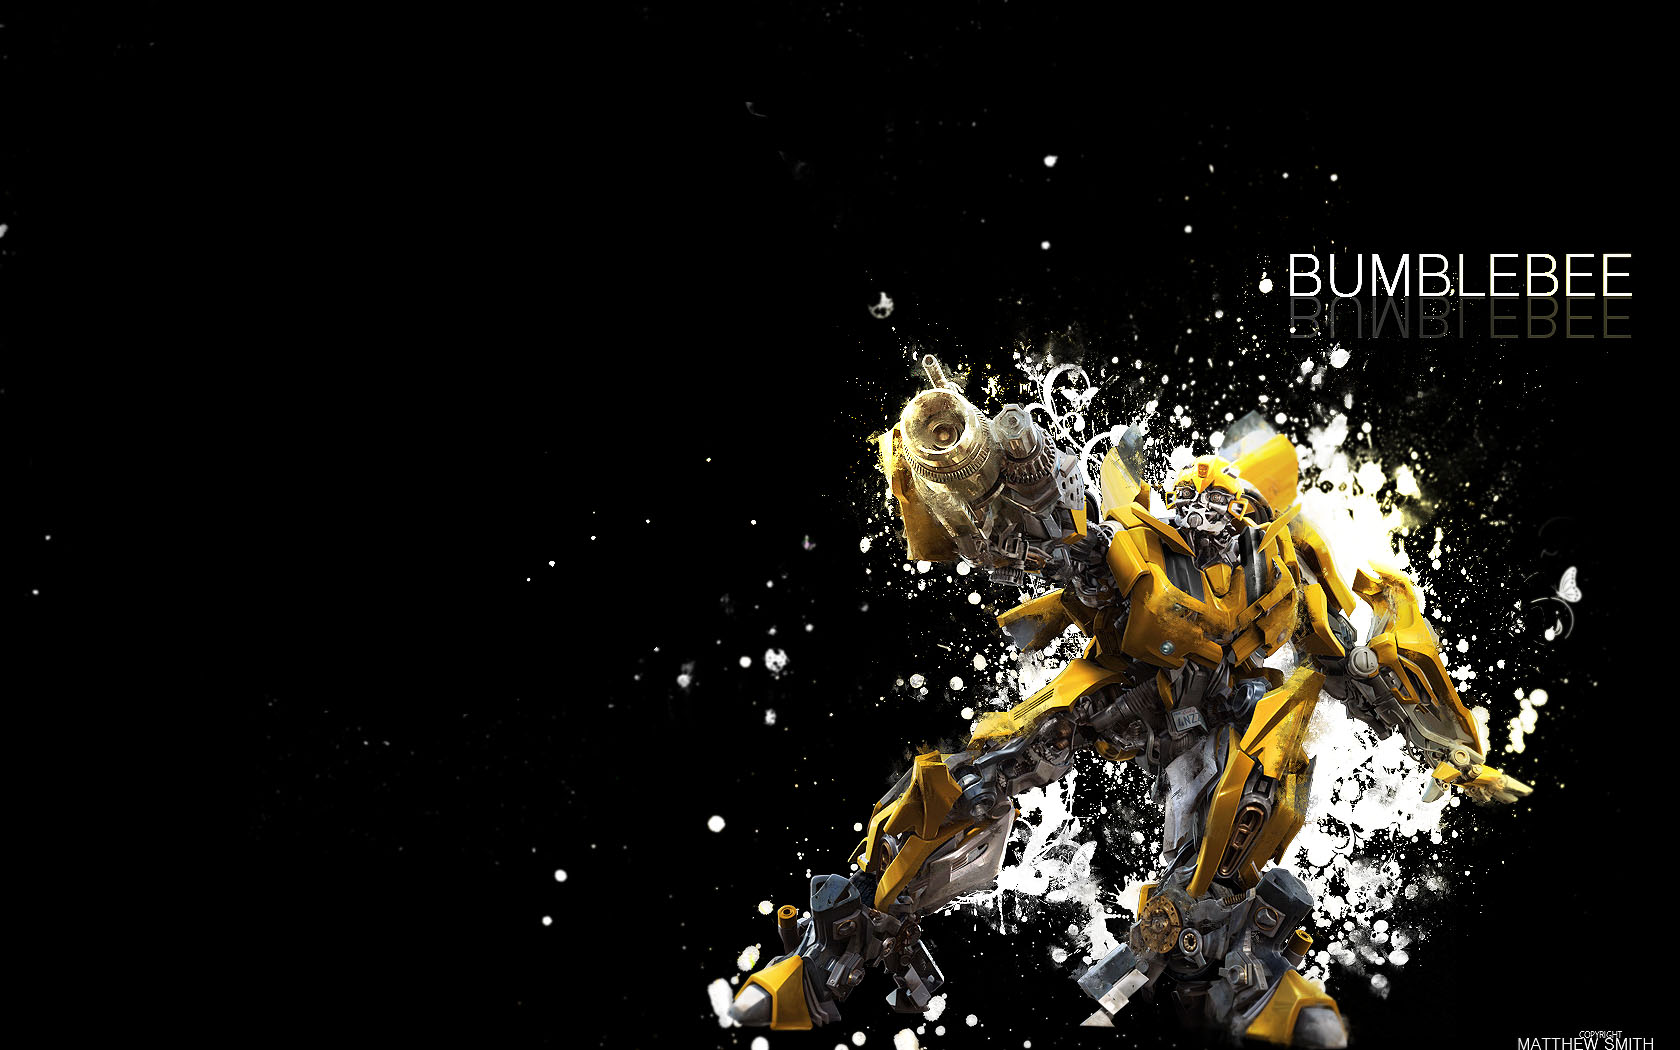 BumbleBee Wallpaper 2 1680x050 by Unique2892 on deviantART 1680x1050